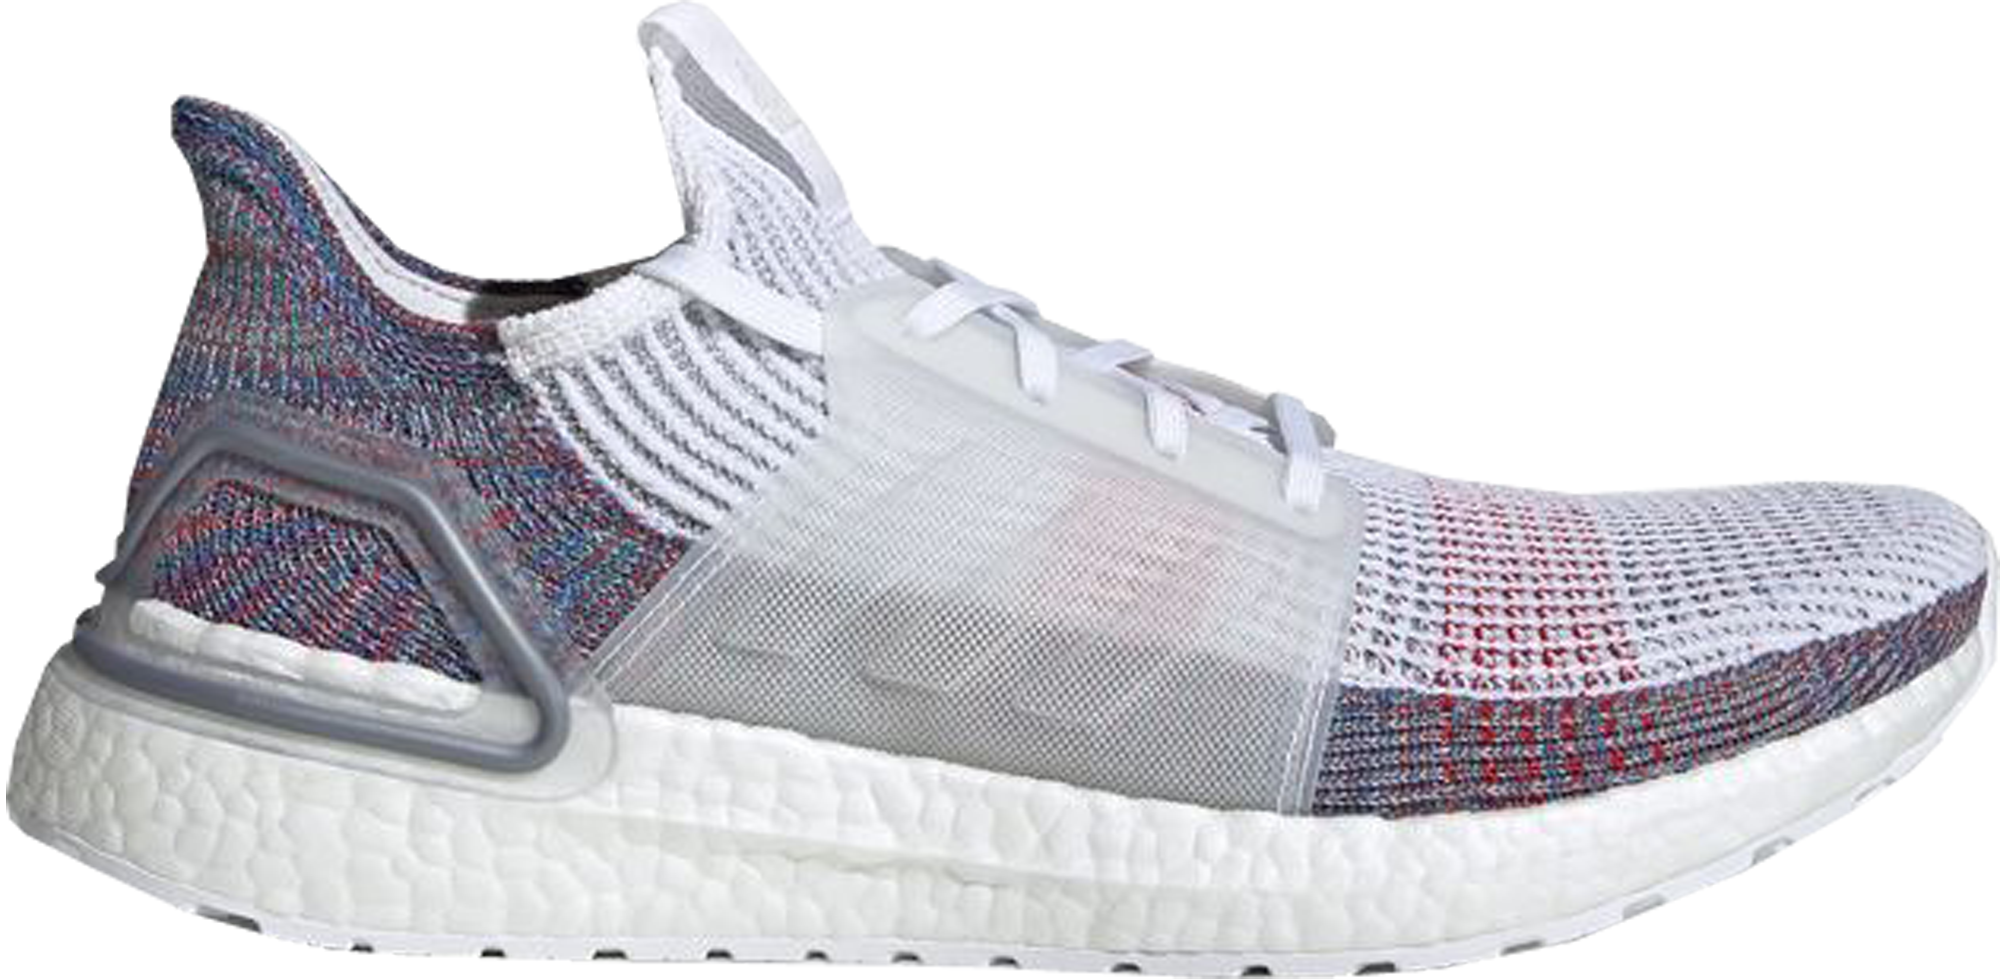 adidas Ultra Boost 2019 White Multi-Color